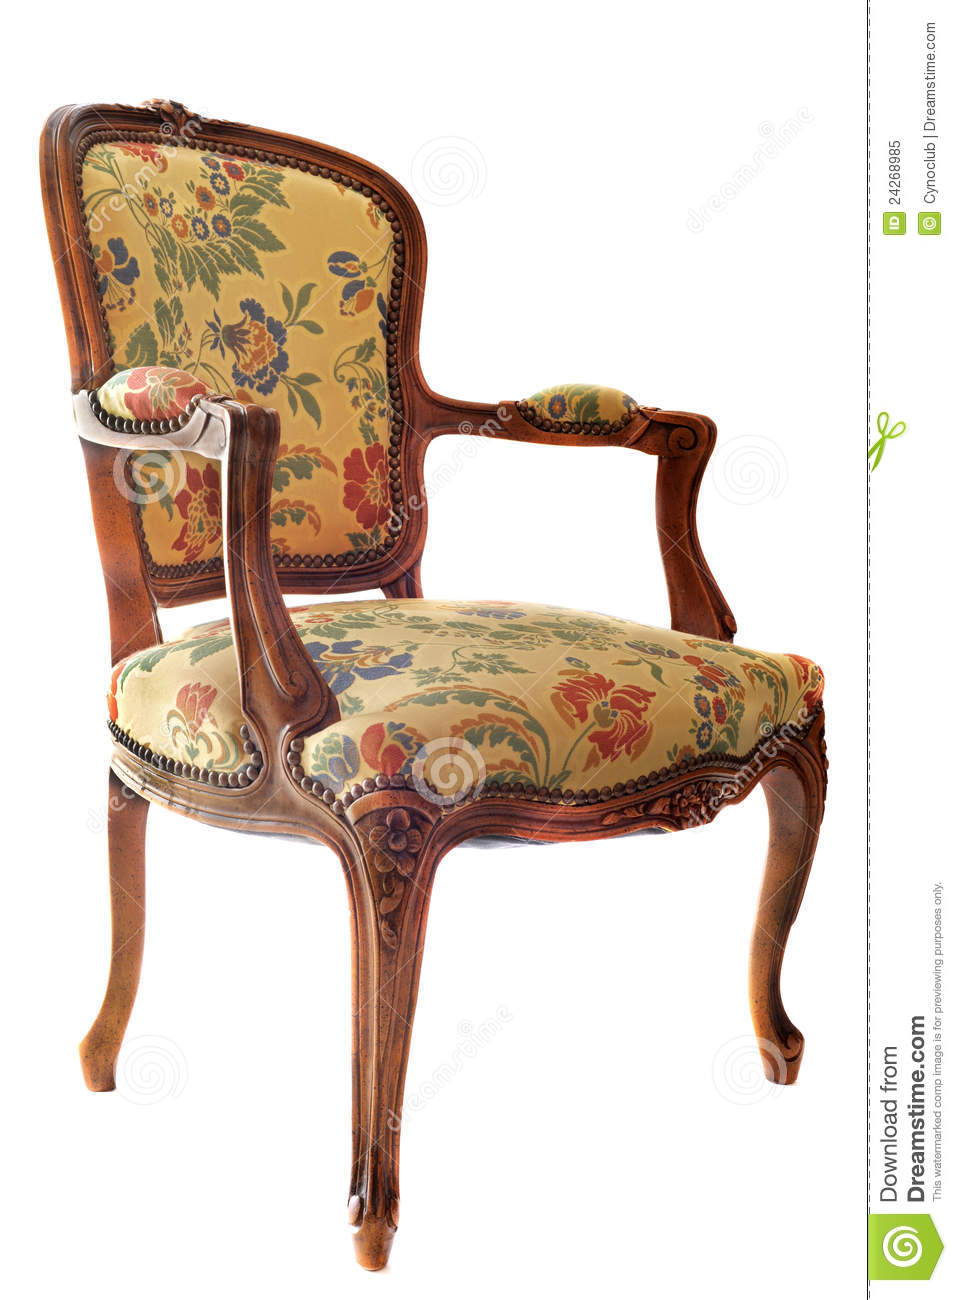 Antique Chair Stock Image Image Of Ornament Relax